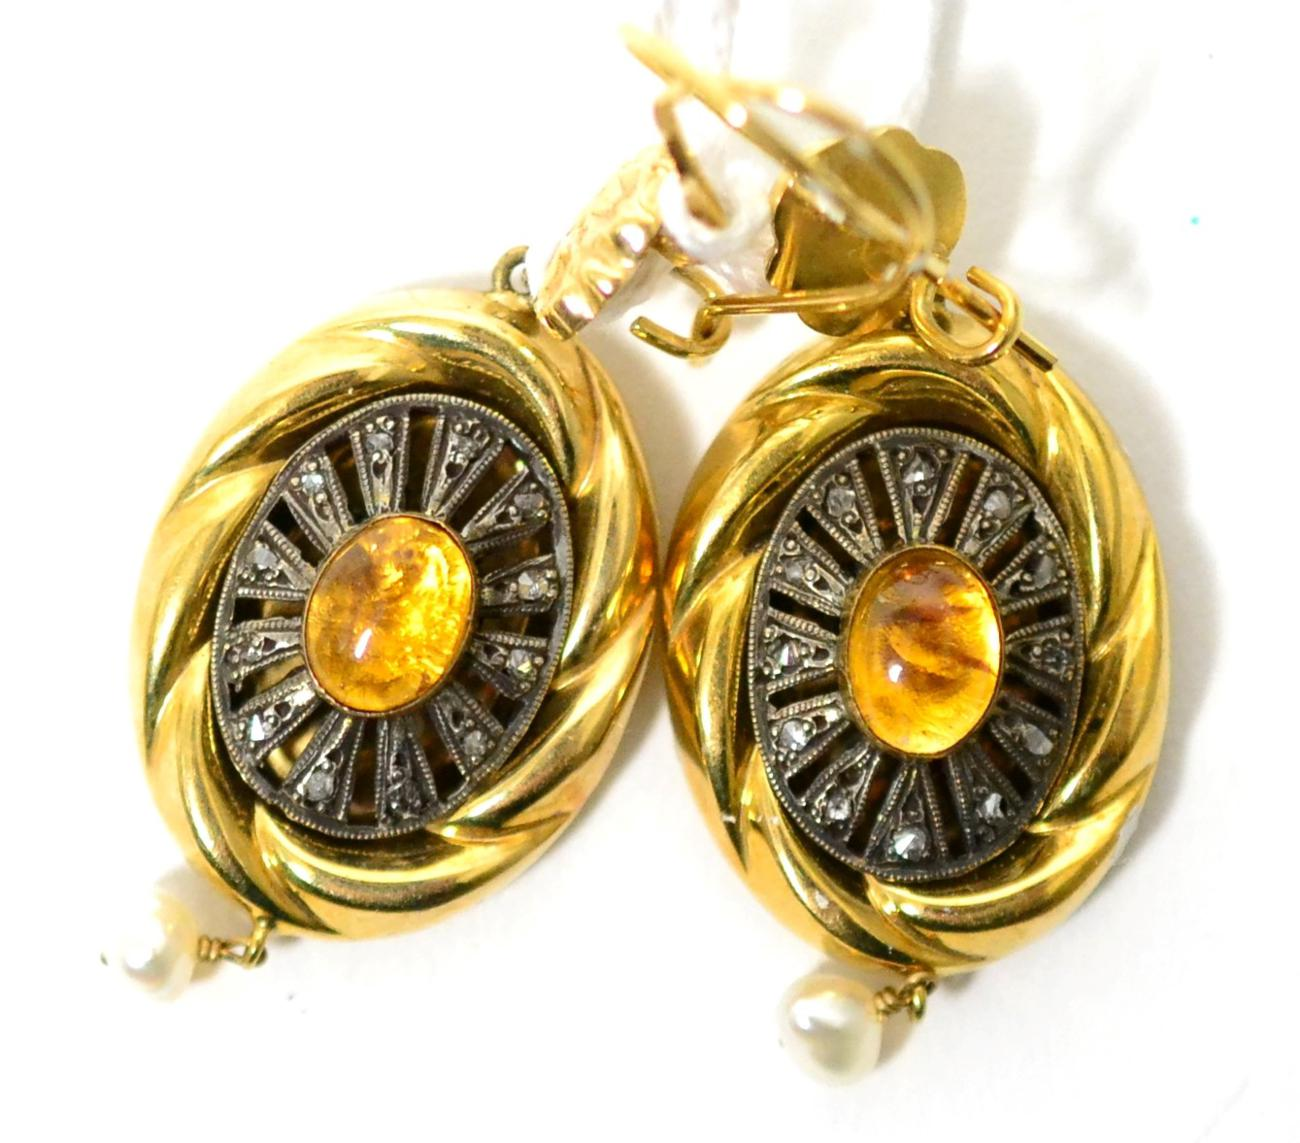 Tennants Auctioneers: A pair of drop earrings